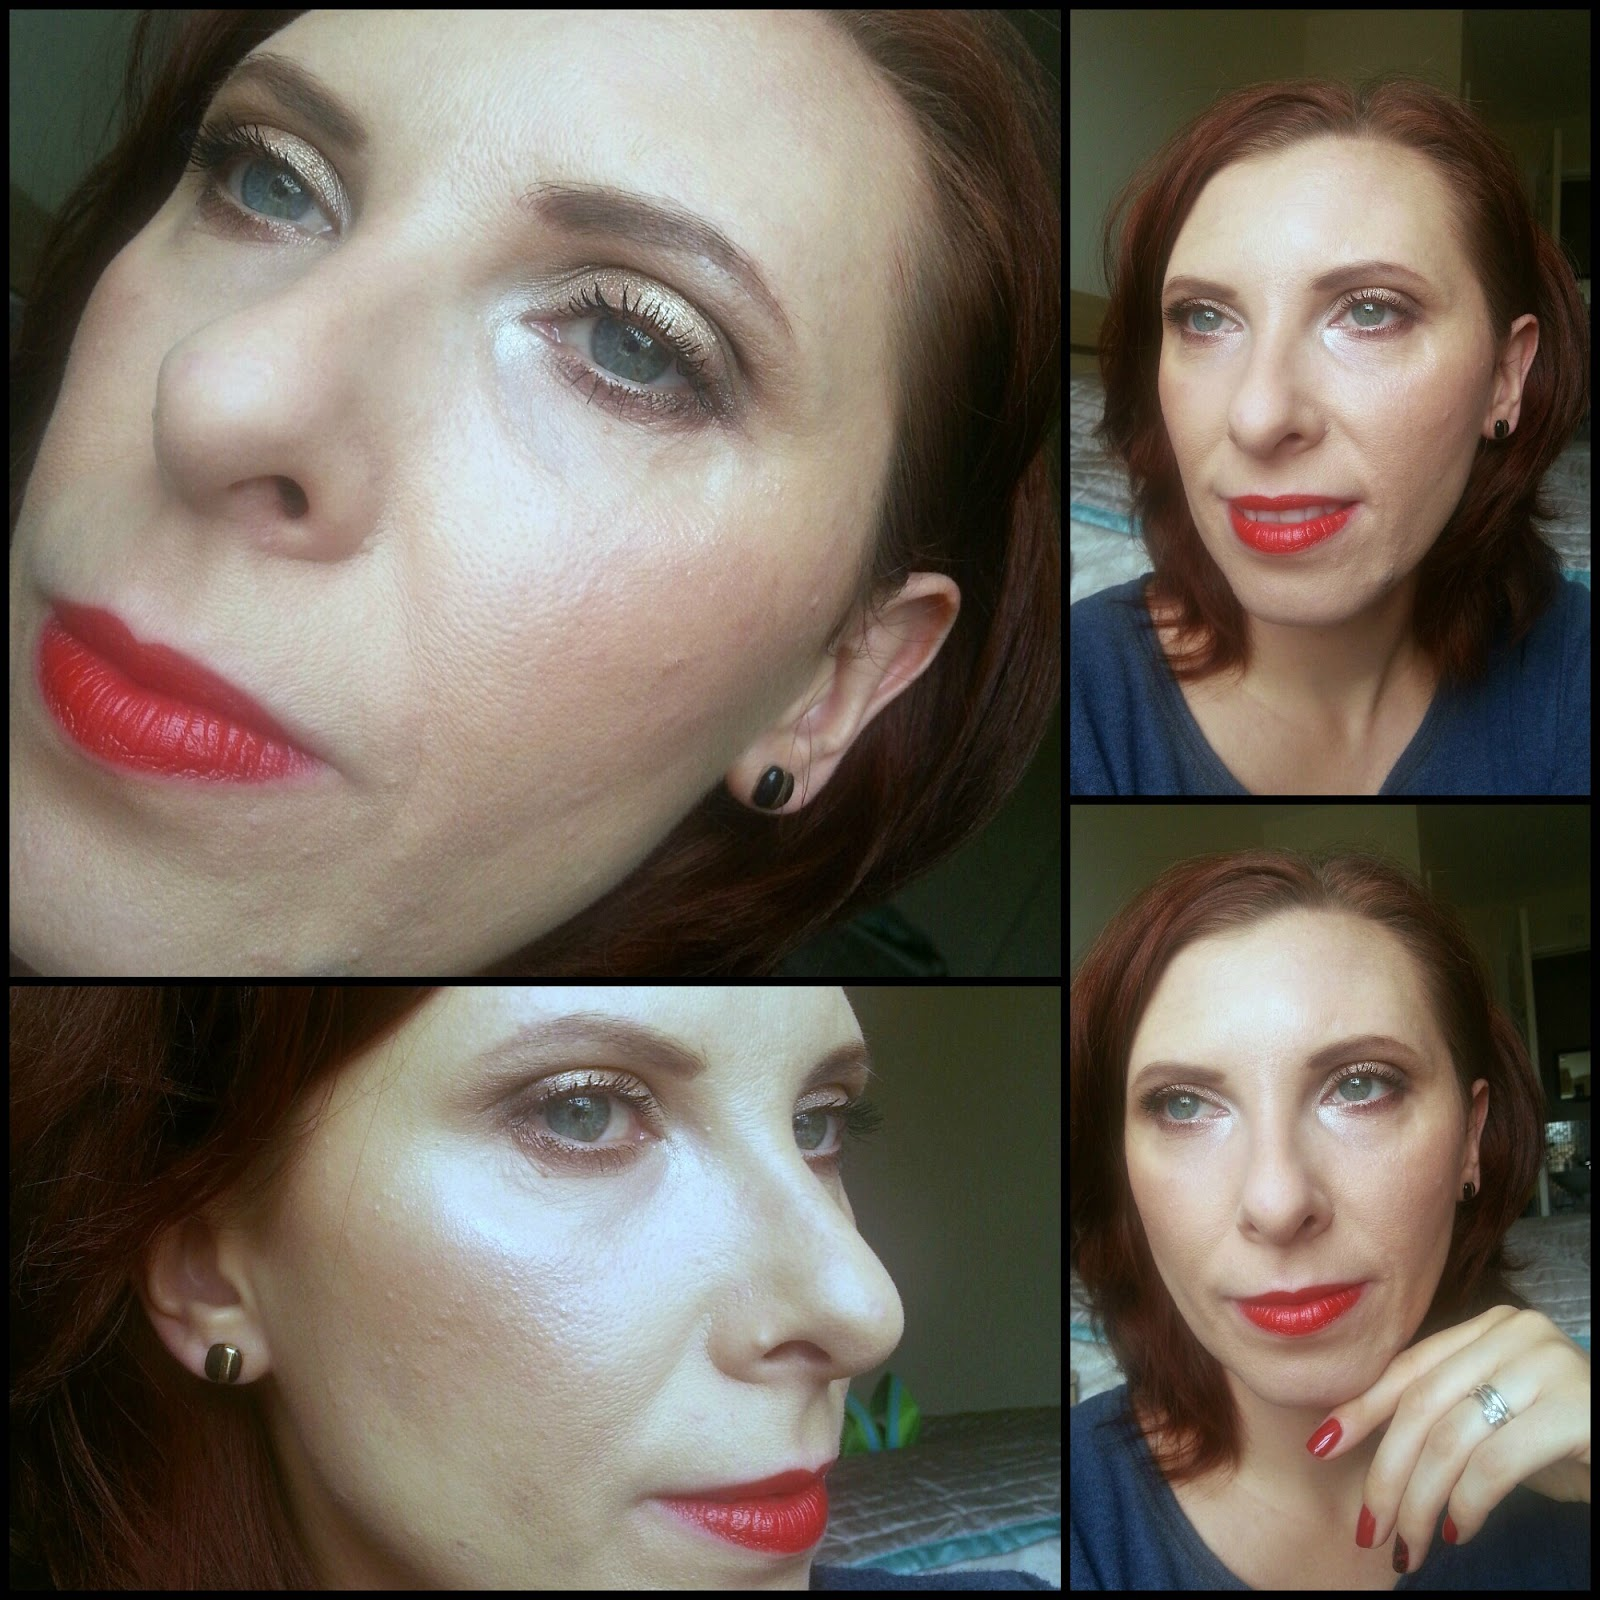 make up: bronzed eyes and red lips